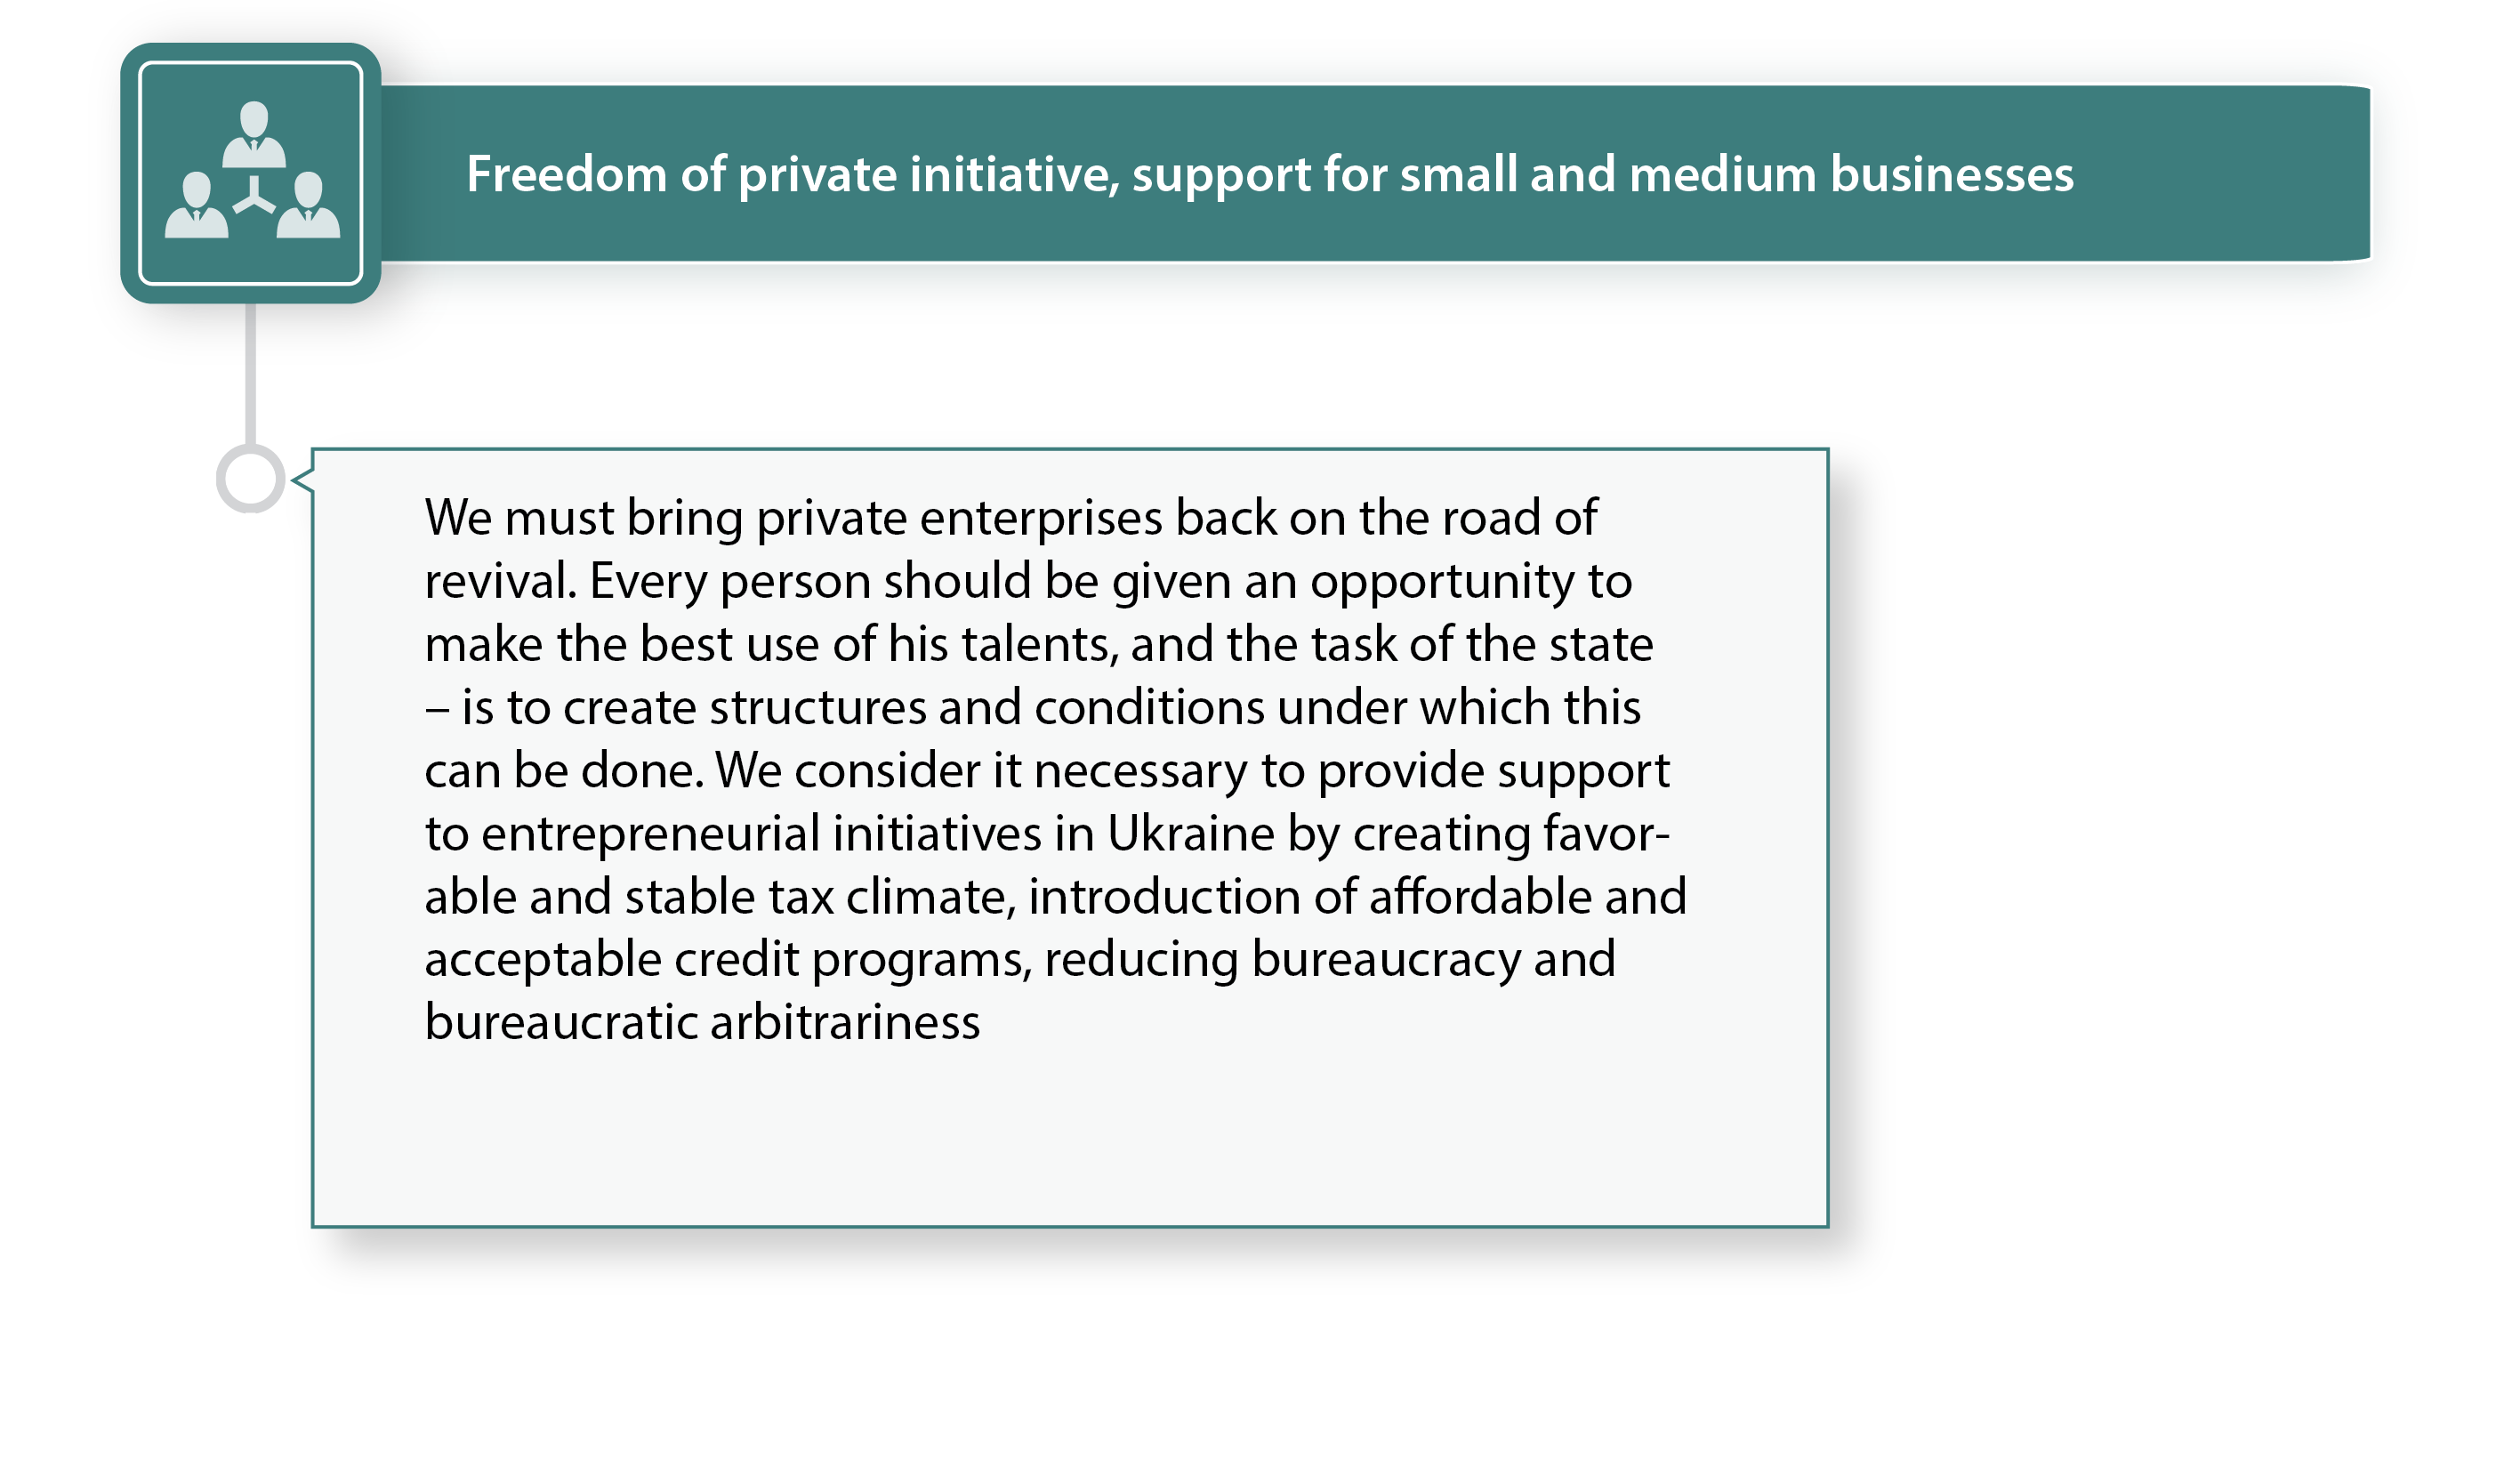 Freedom of private initiative, support for small and medium businesses